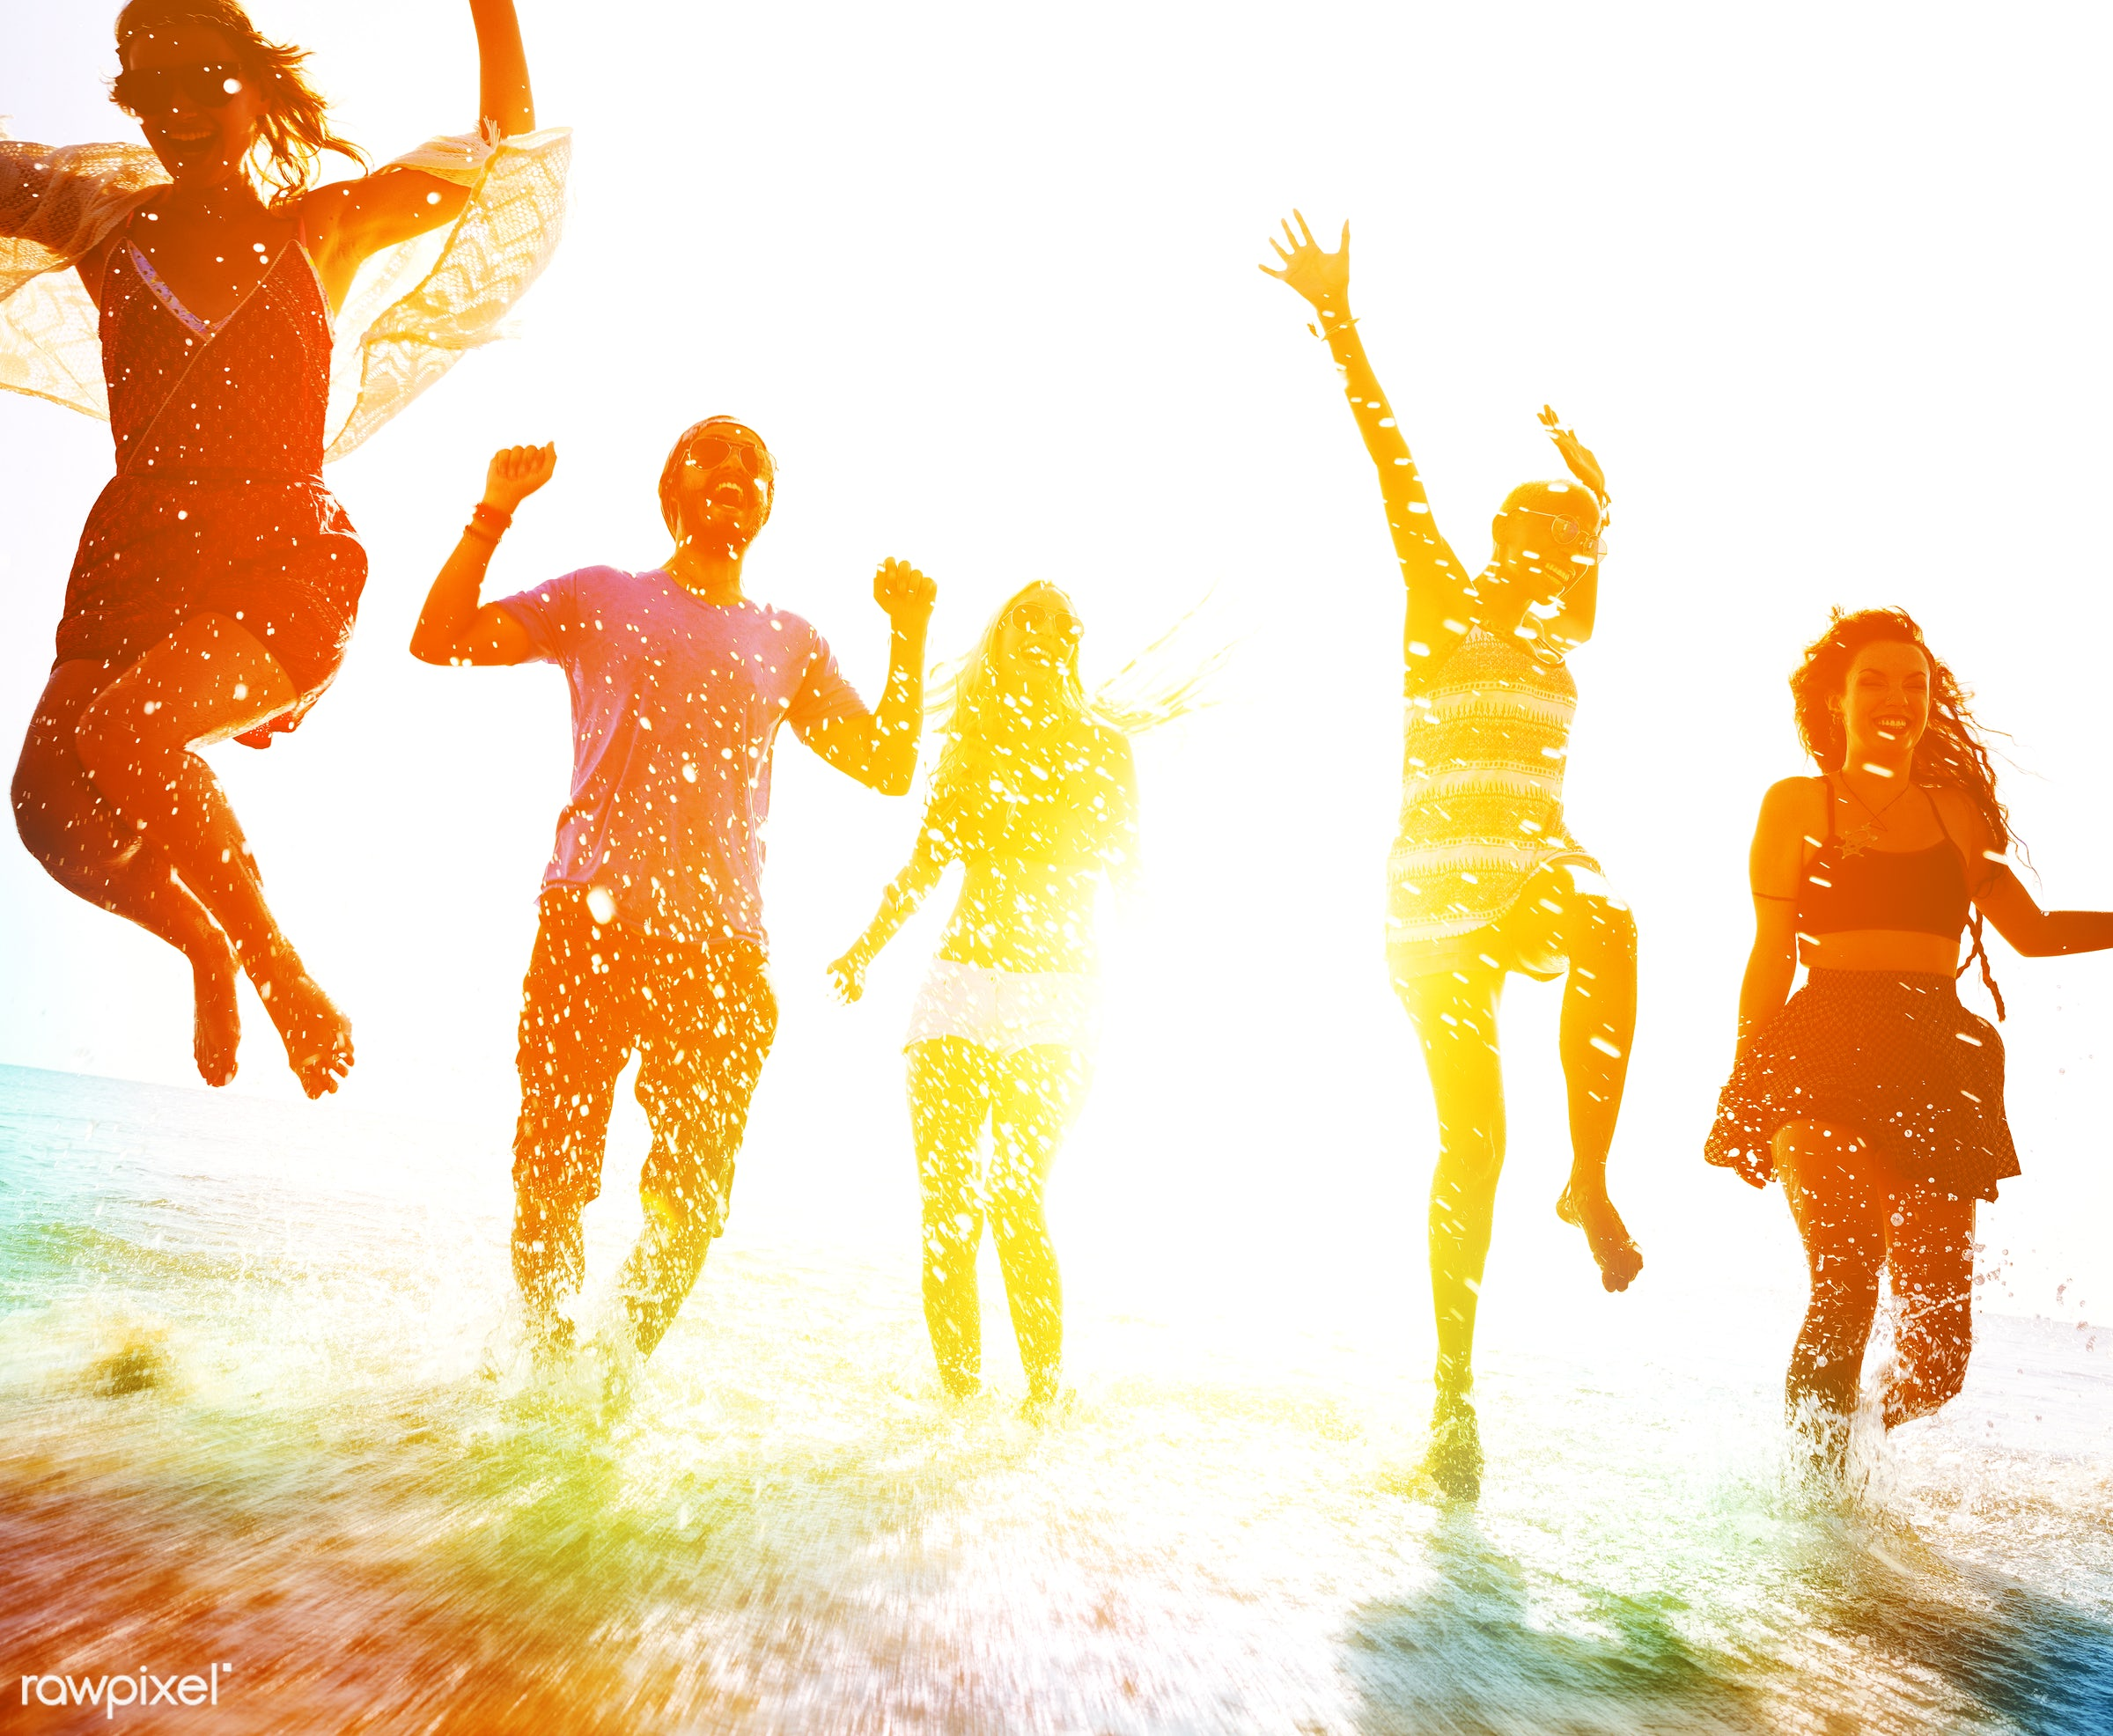 dusk, action, african descent, arms raised, backlit, beach, blurred, bonding, celebration, cheerful, chilling, ecstatic,...